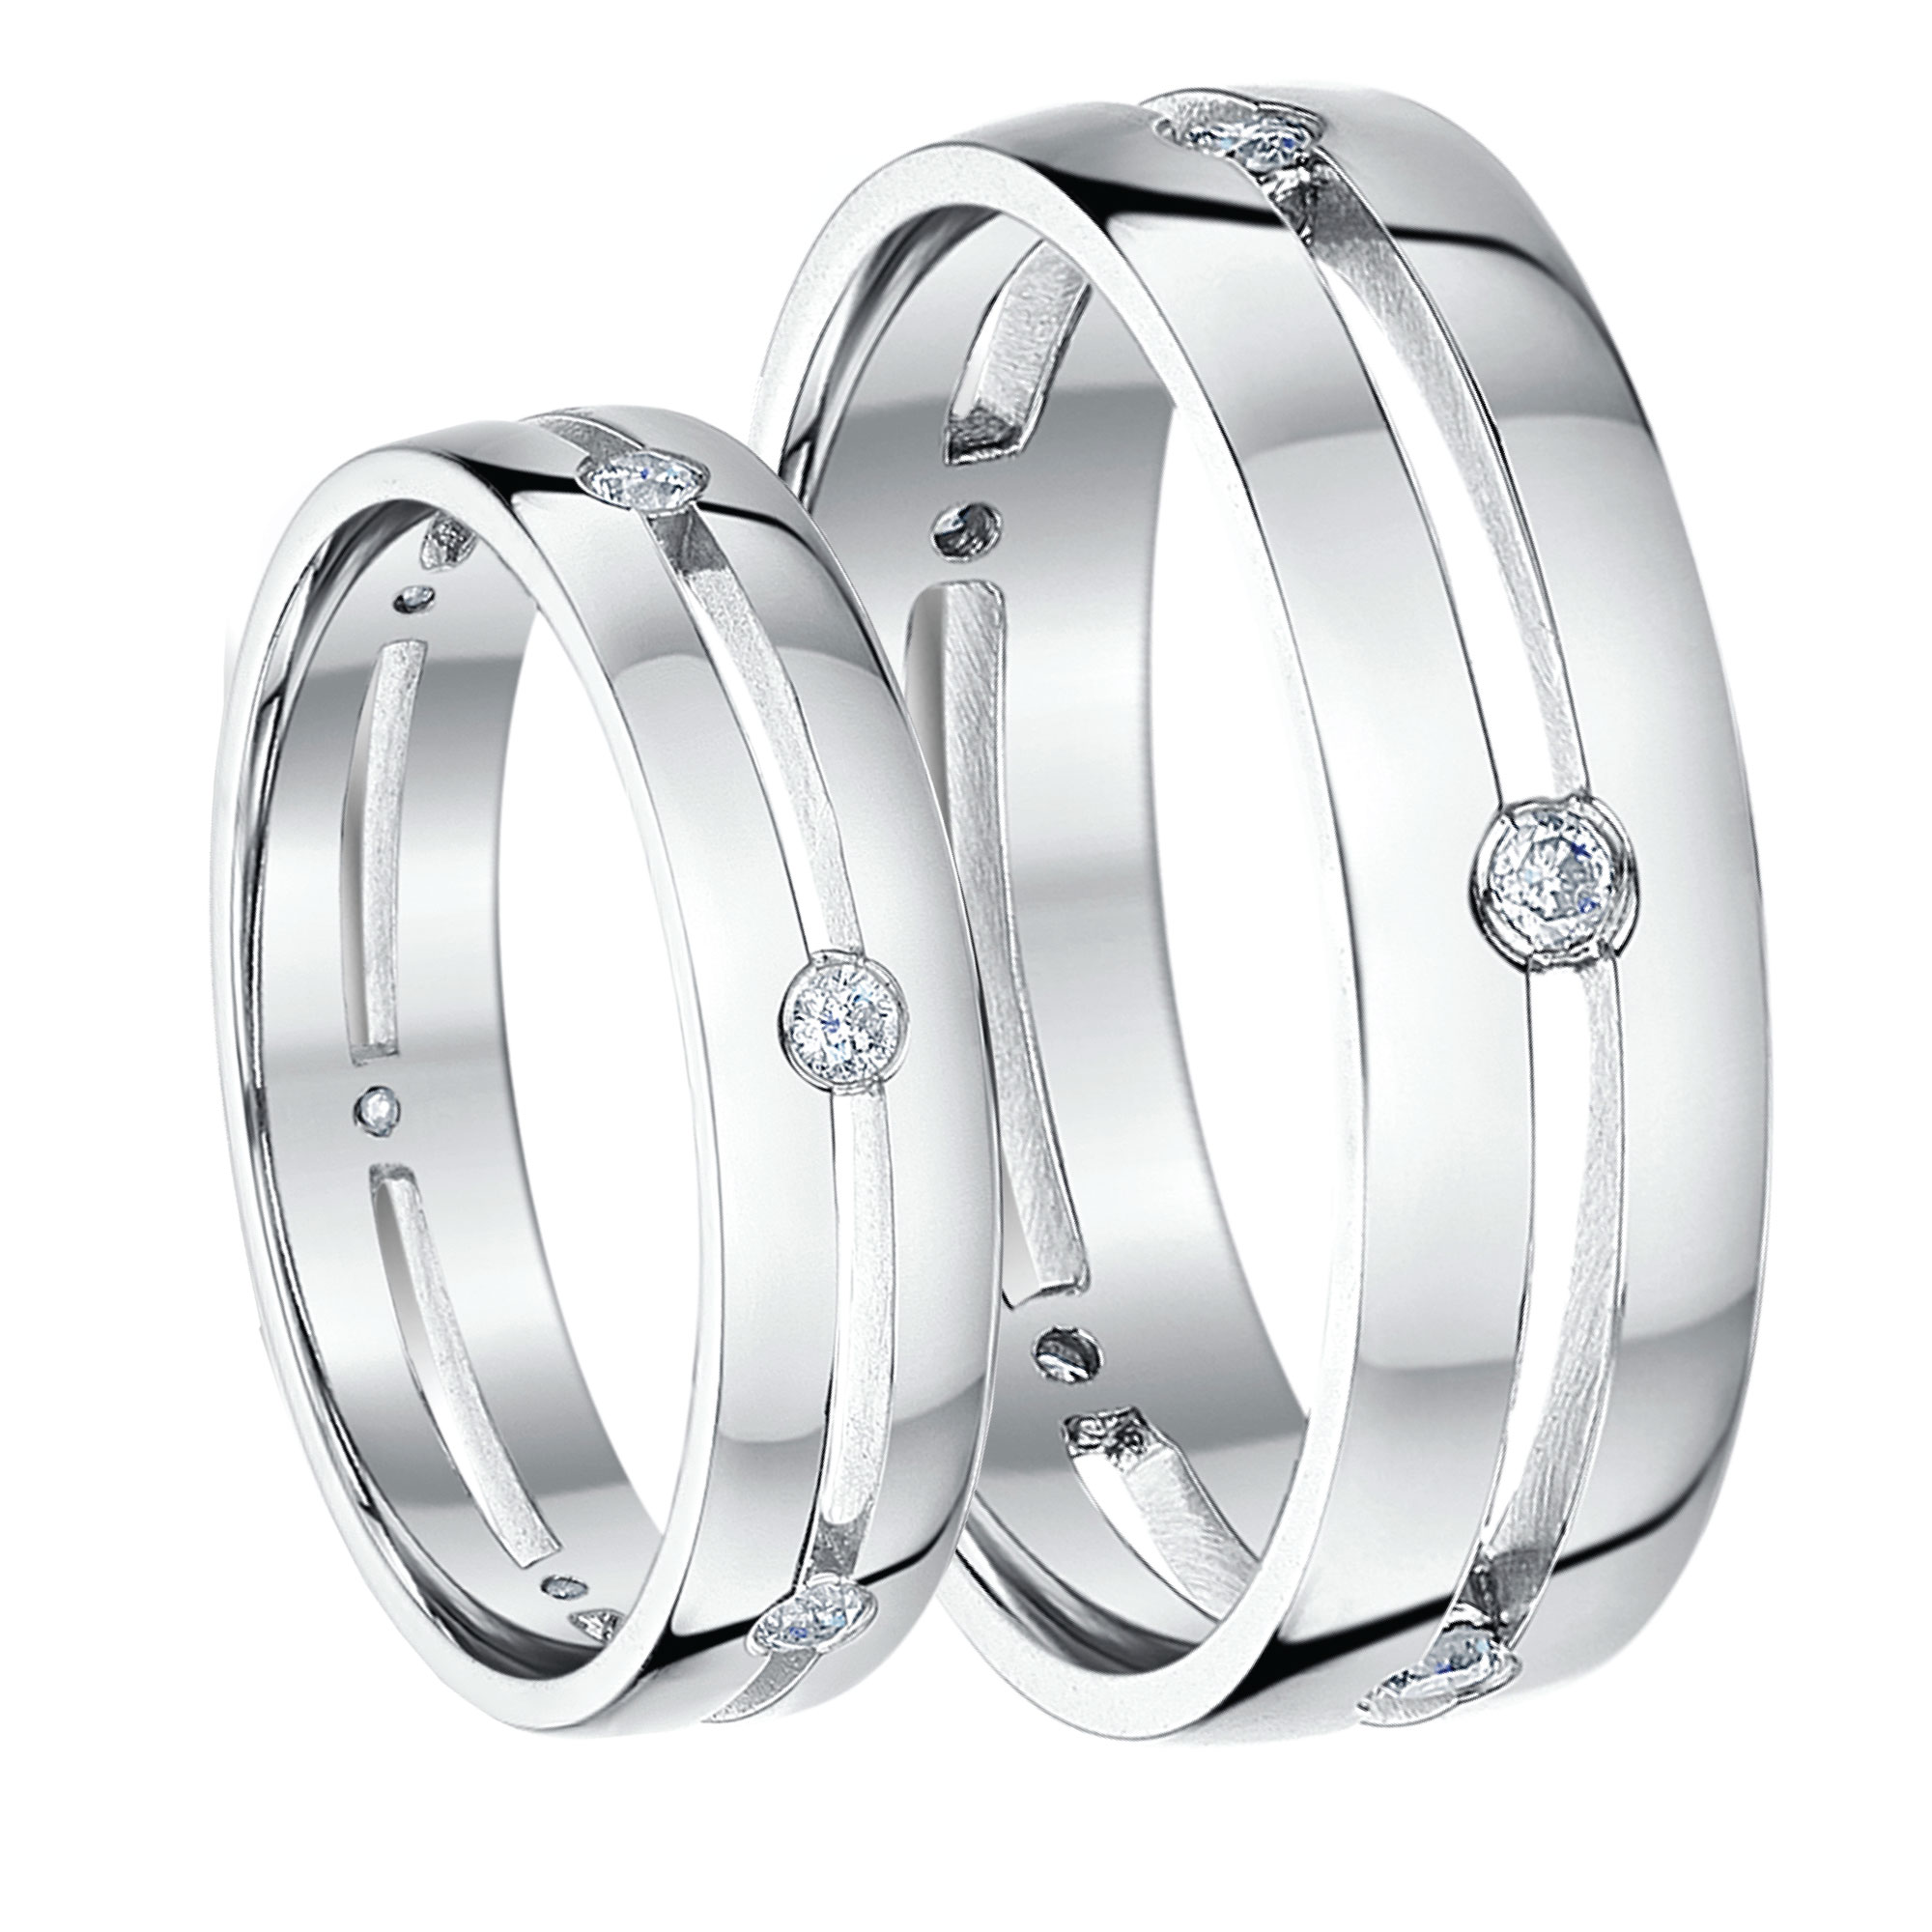 ring jewelry rings accurate precious bands metals band white shop diamond kt gold